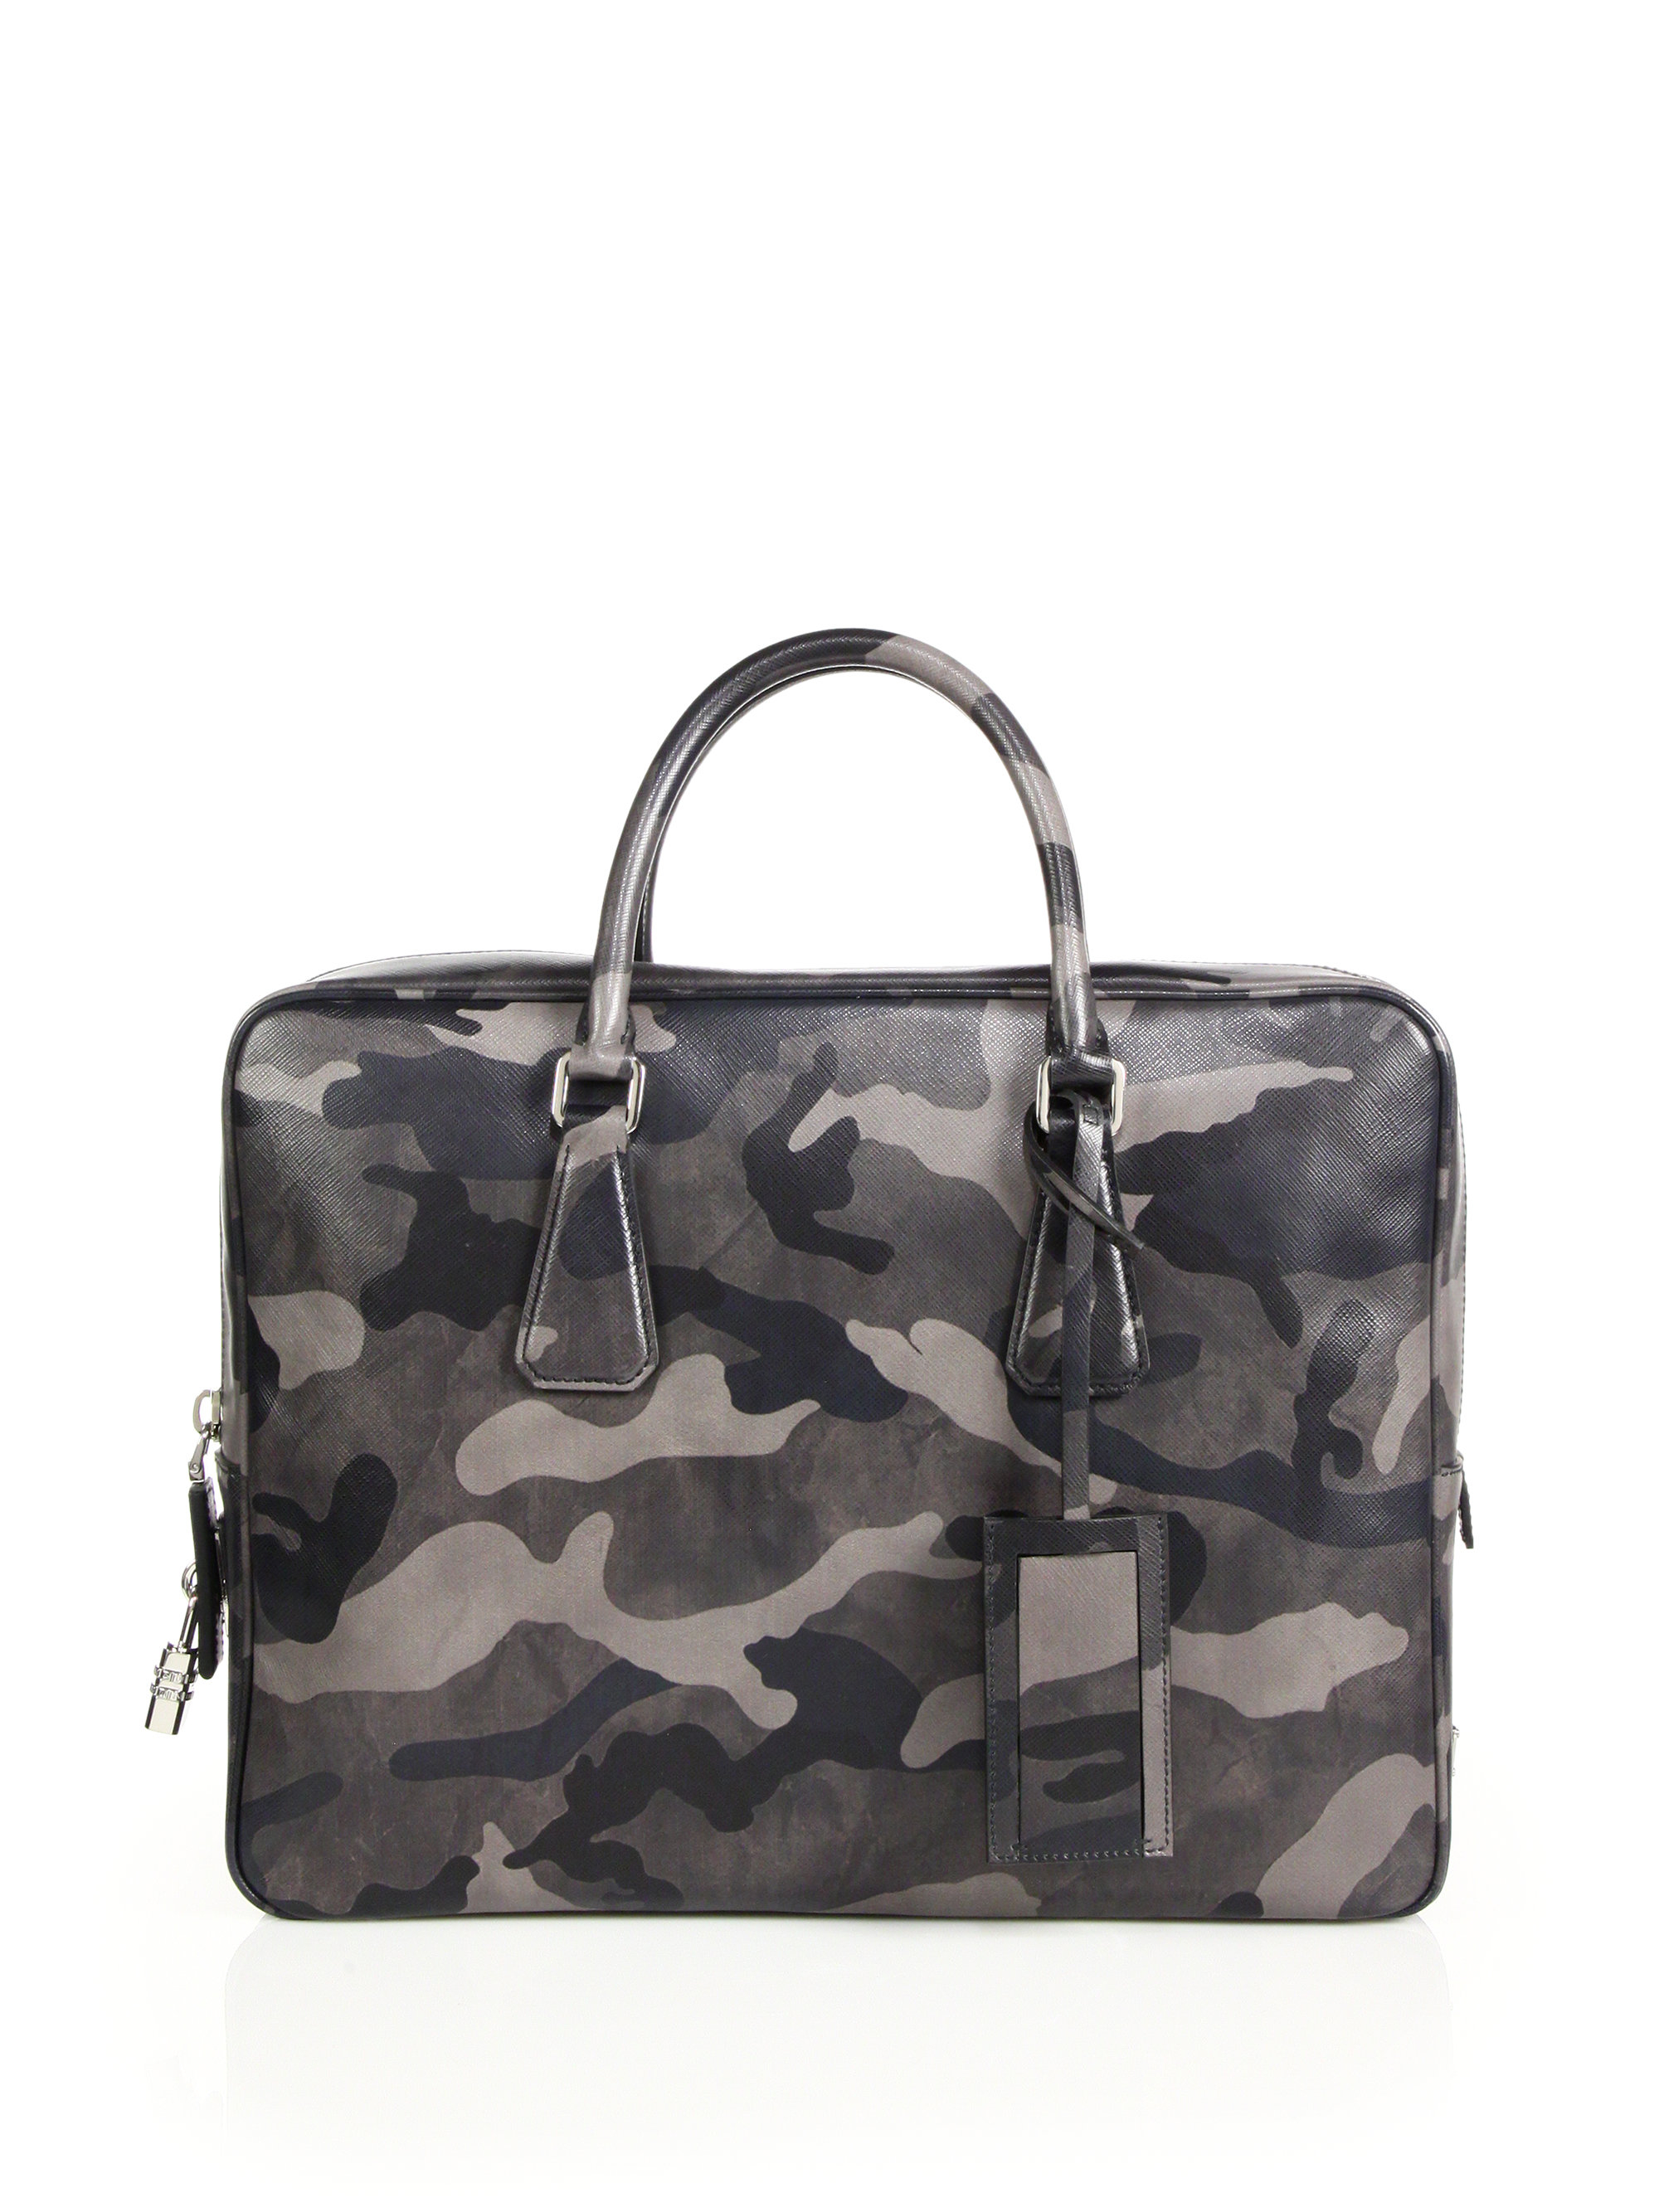 47aadb386166fd Prada Saffiano Camouflage Leather Briefcase in Gray for Men - Lyst